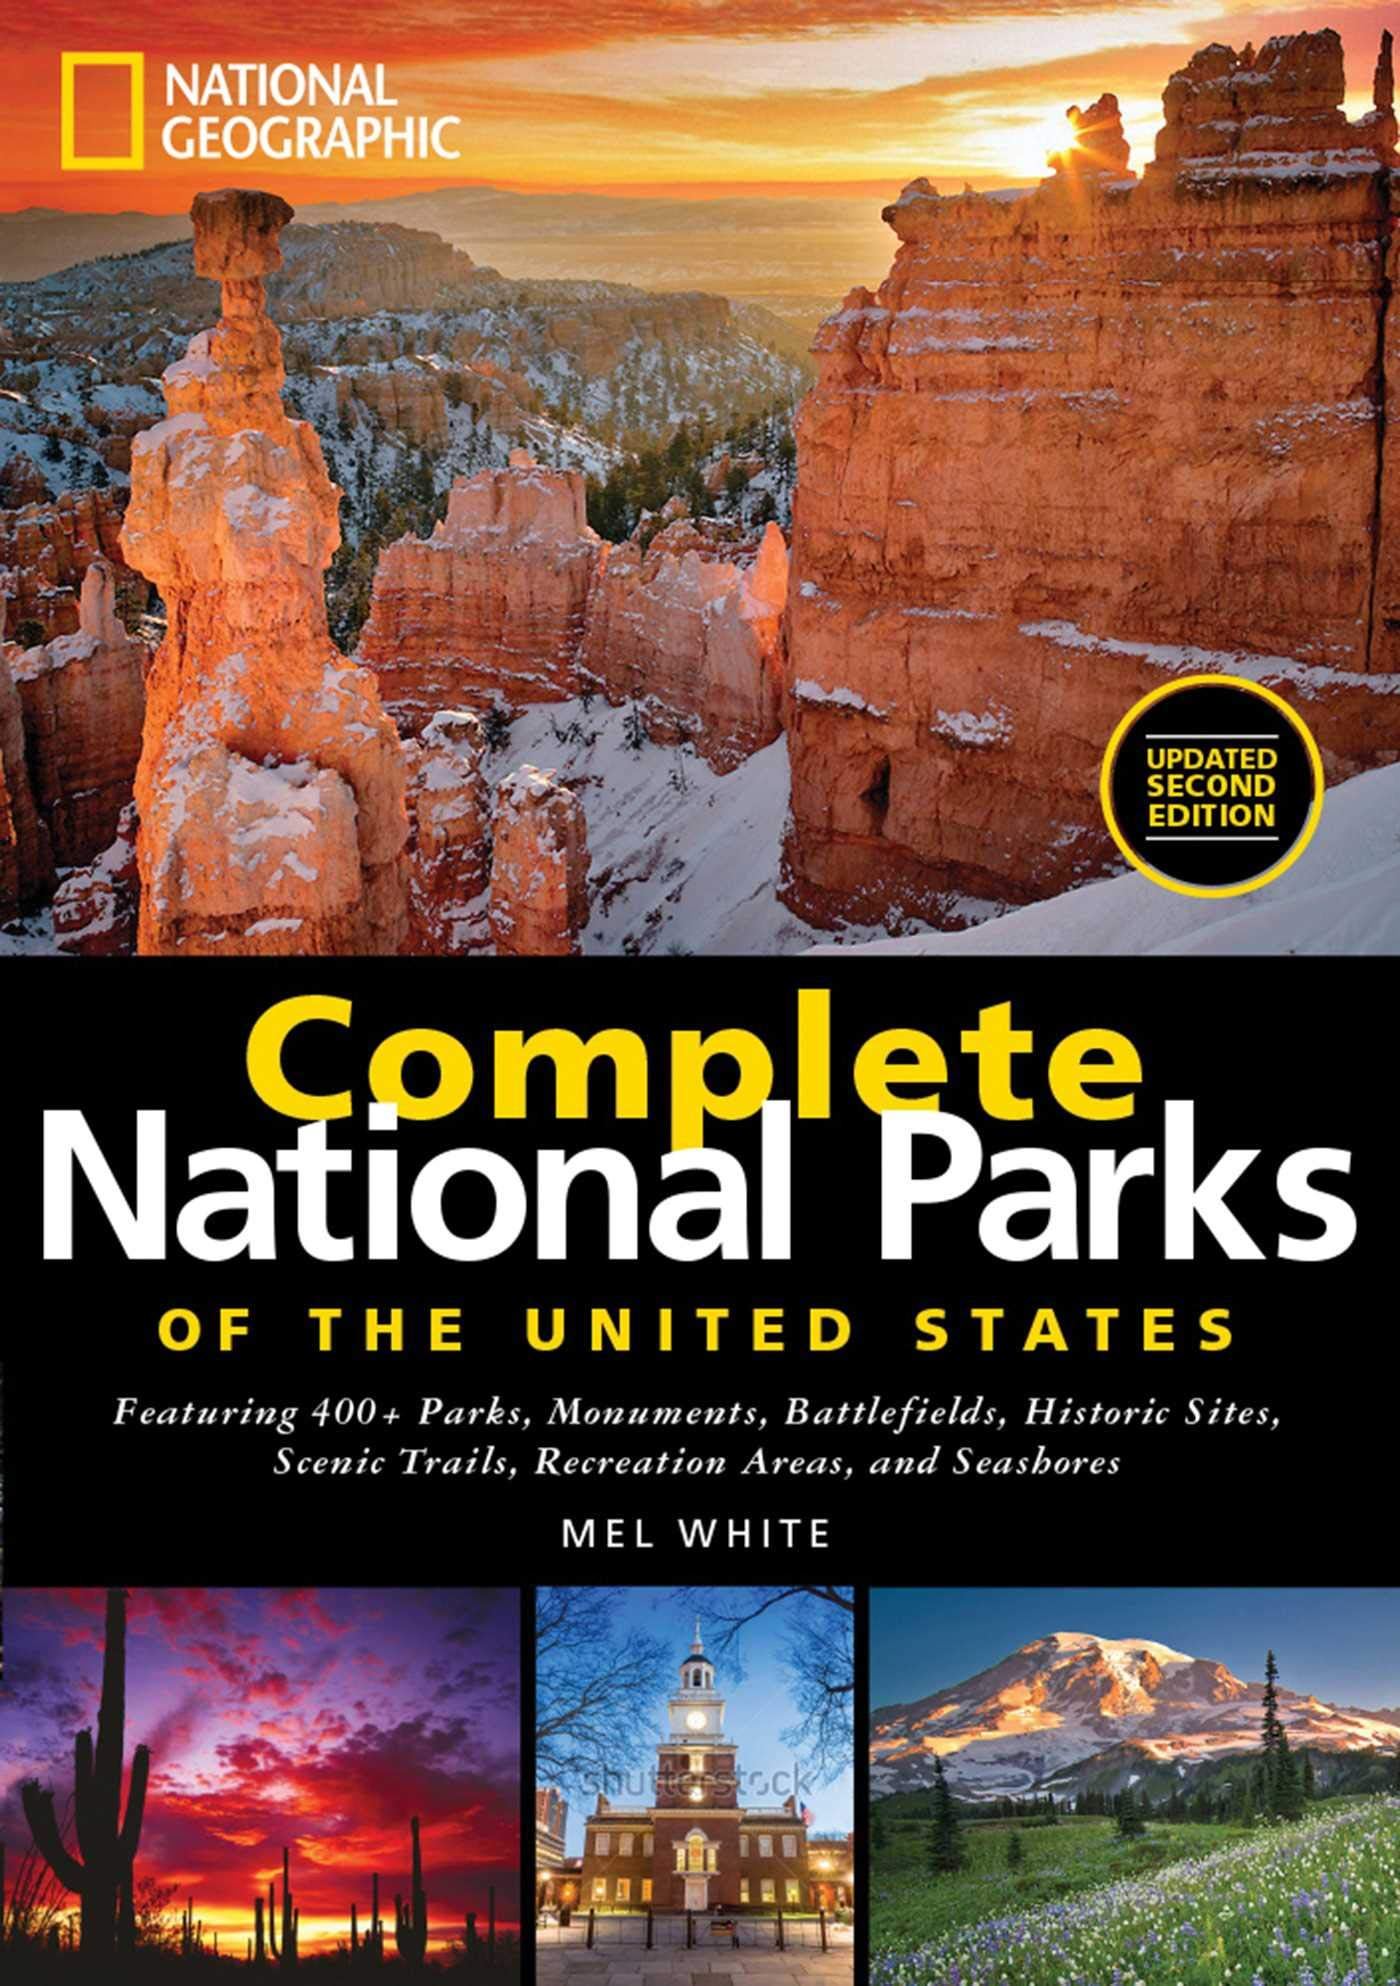 National Geographic Complete National Parks of the United States, 2nd Edition: 400+ Parks, Monuments, Battlefields, Historic Sites, Scenic Trails, Recreation Areas, and Seashores by National Geographic